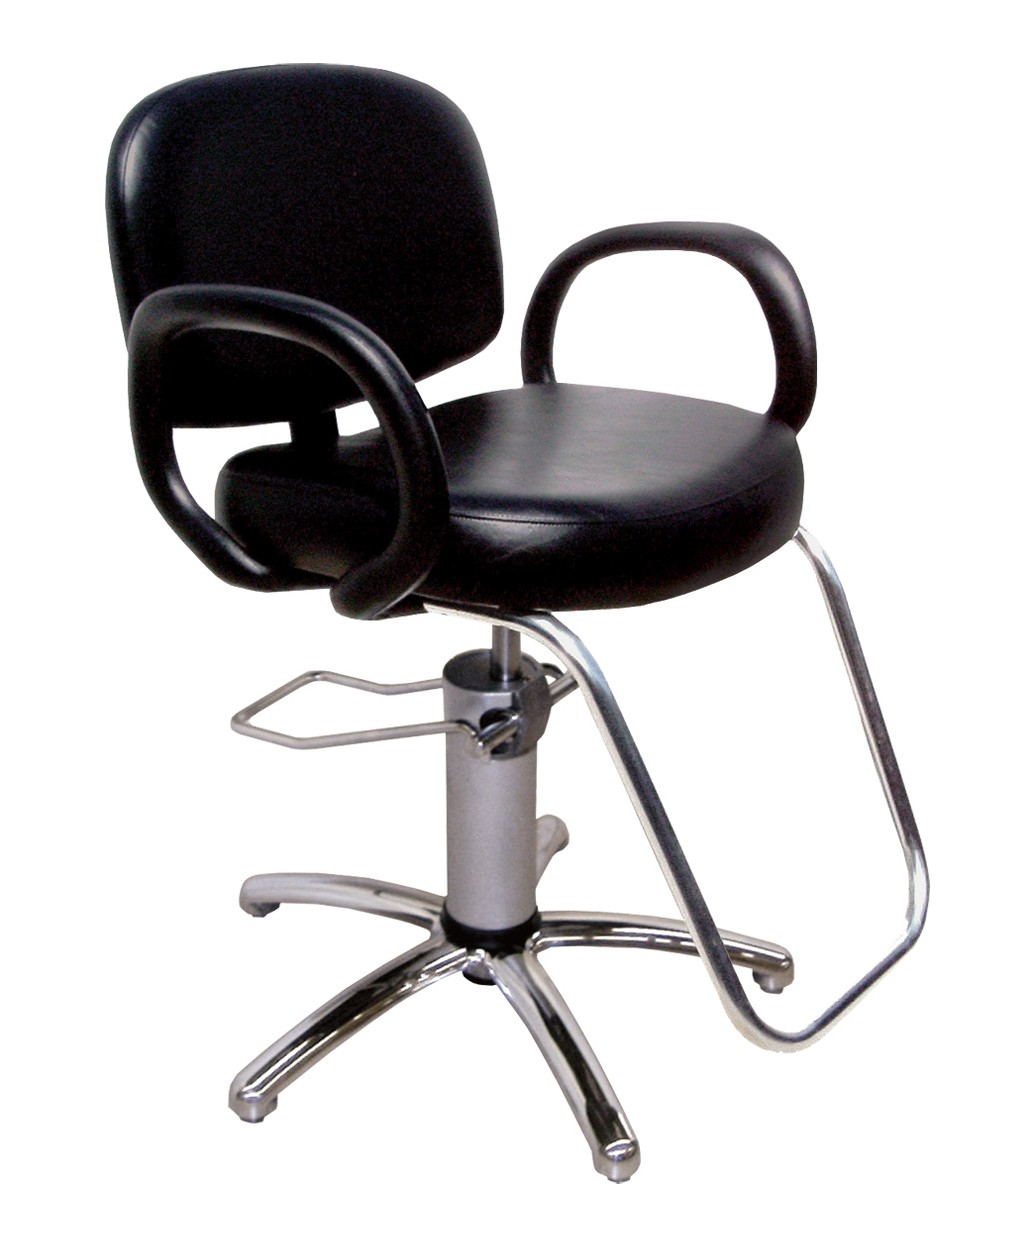 Collins QSE 1600 Kiva Styling Chair